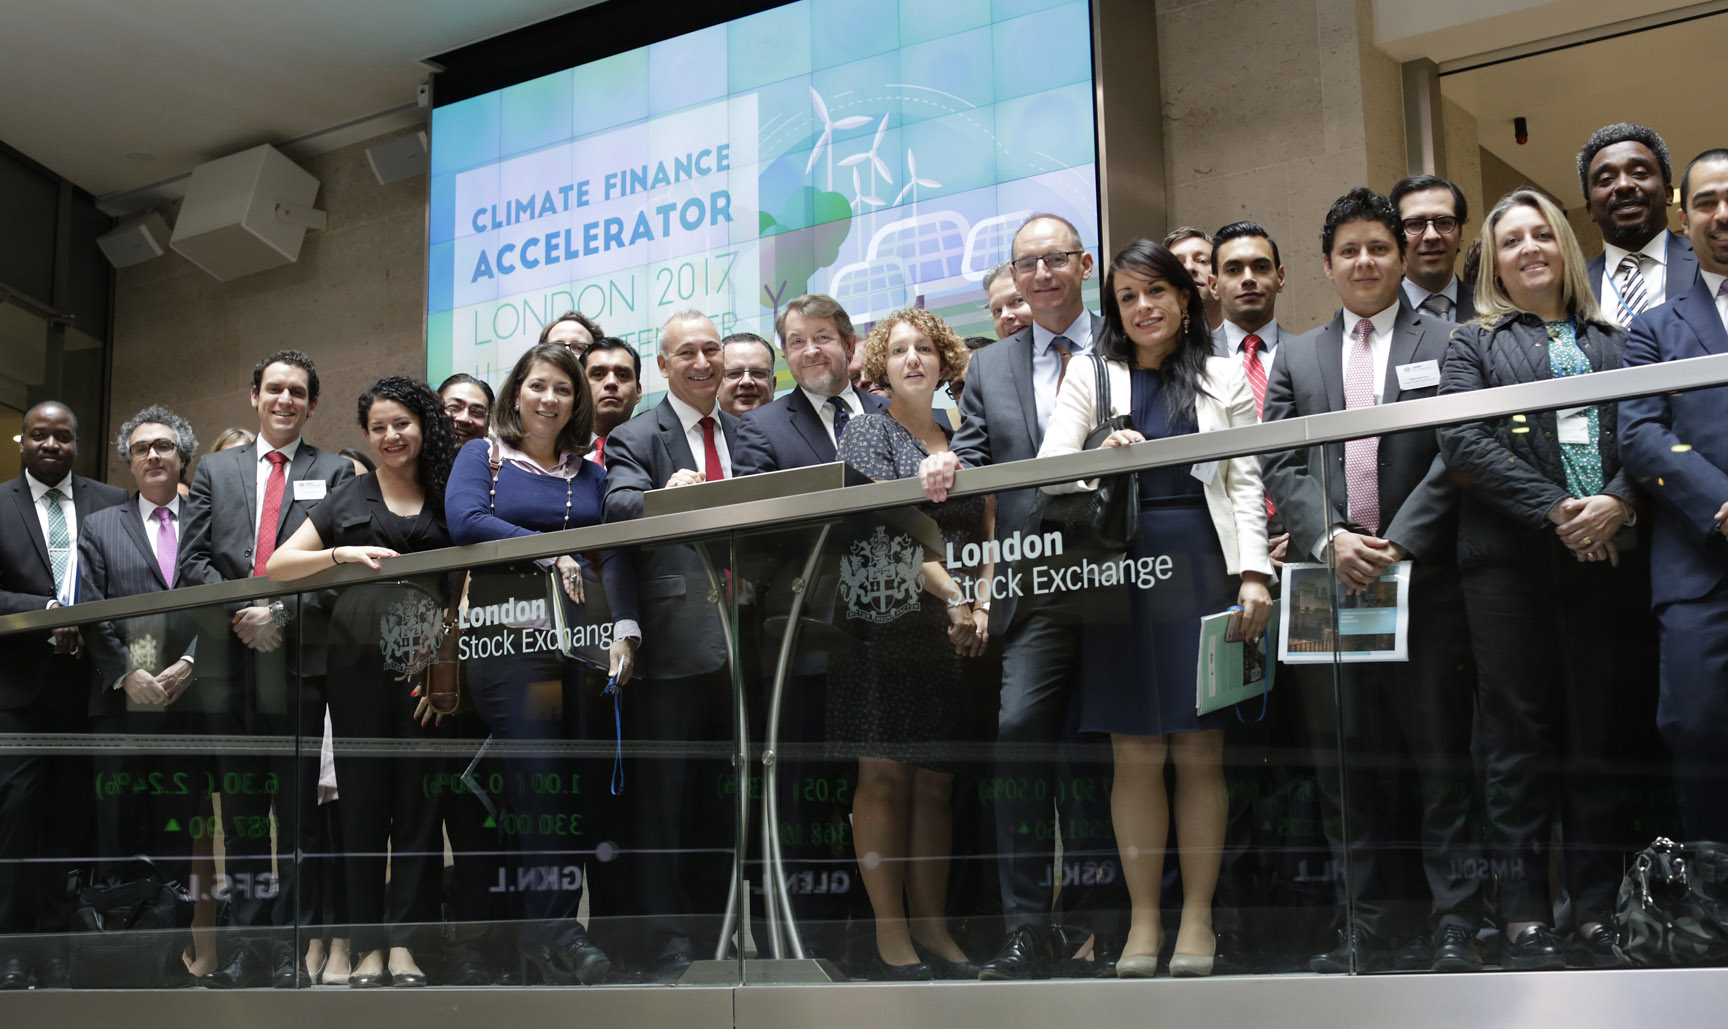 Groundbreaking climate finance accelerator initiative